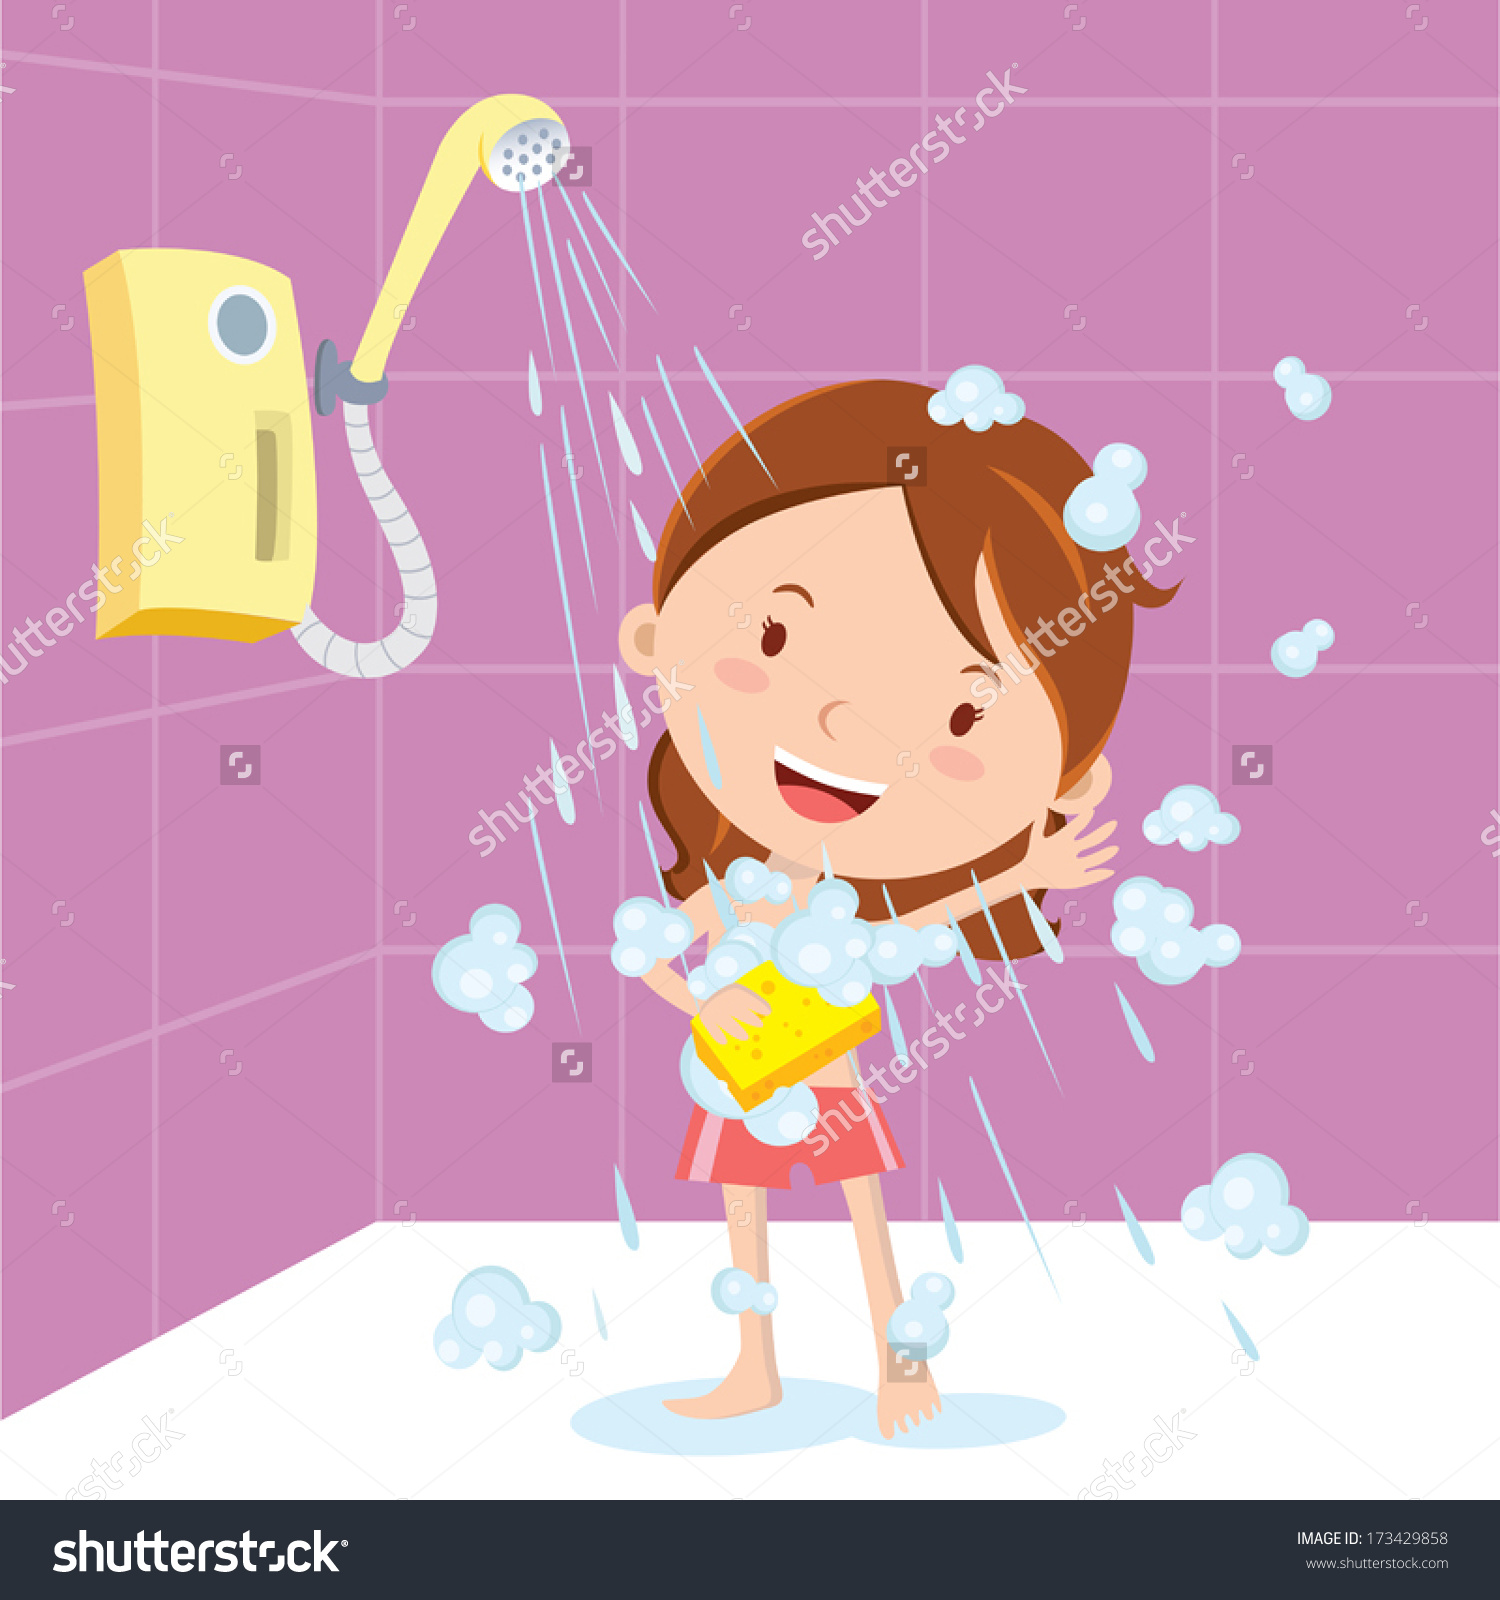 Clipart Of Woman Taking A Shower 20 Free Cliparts -4700